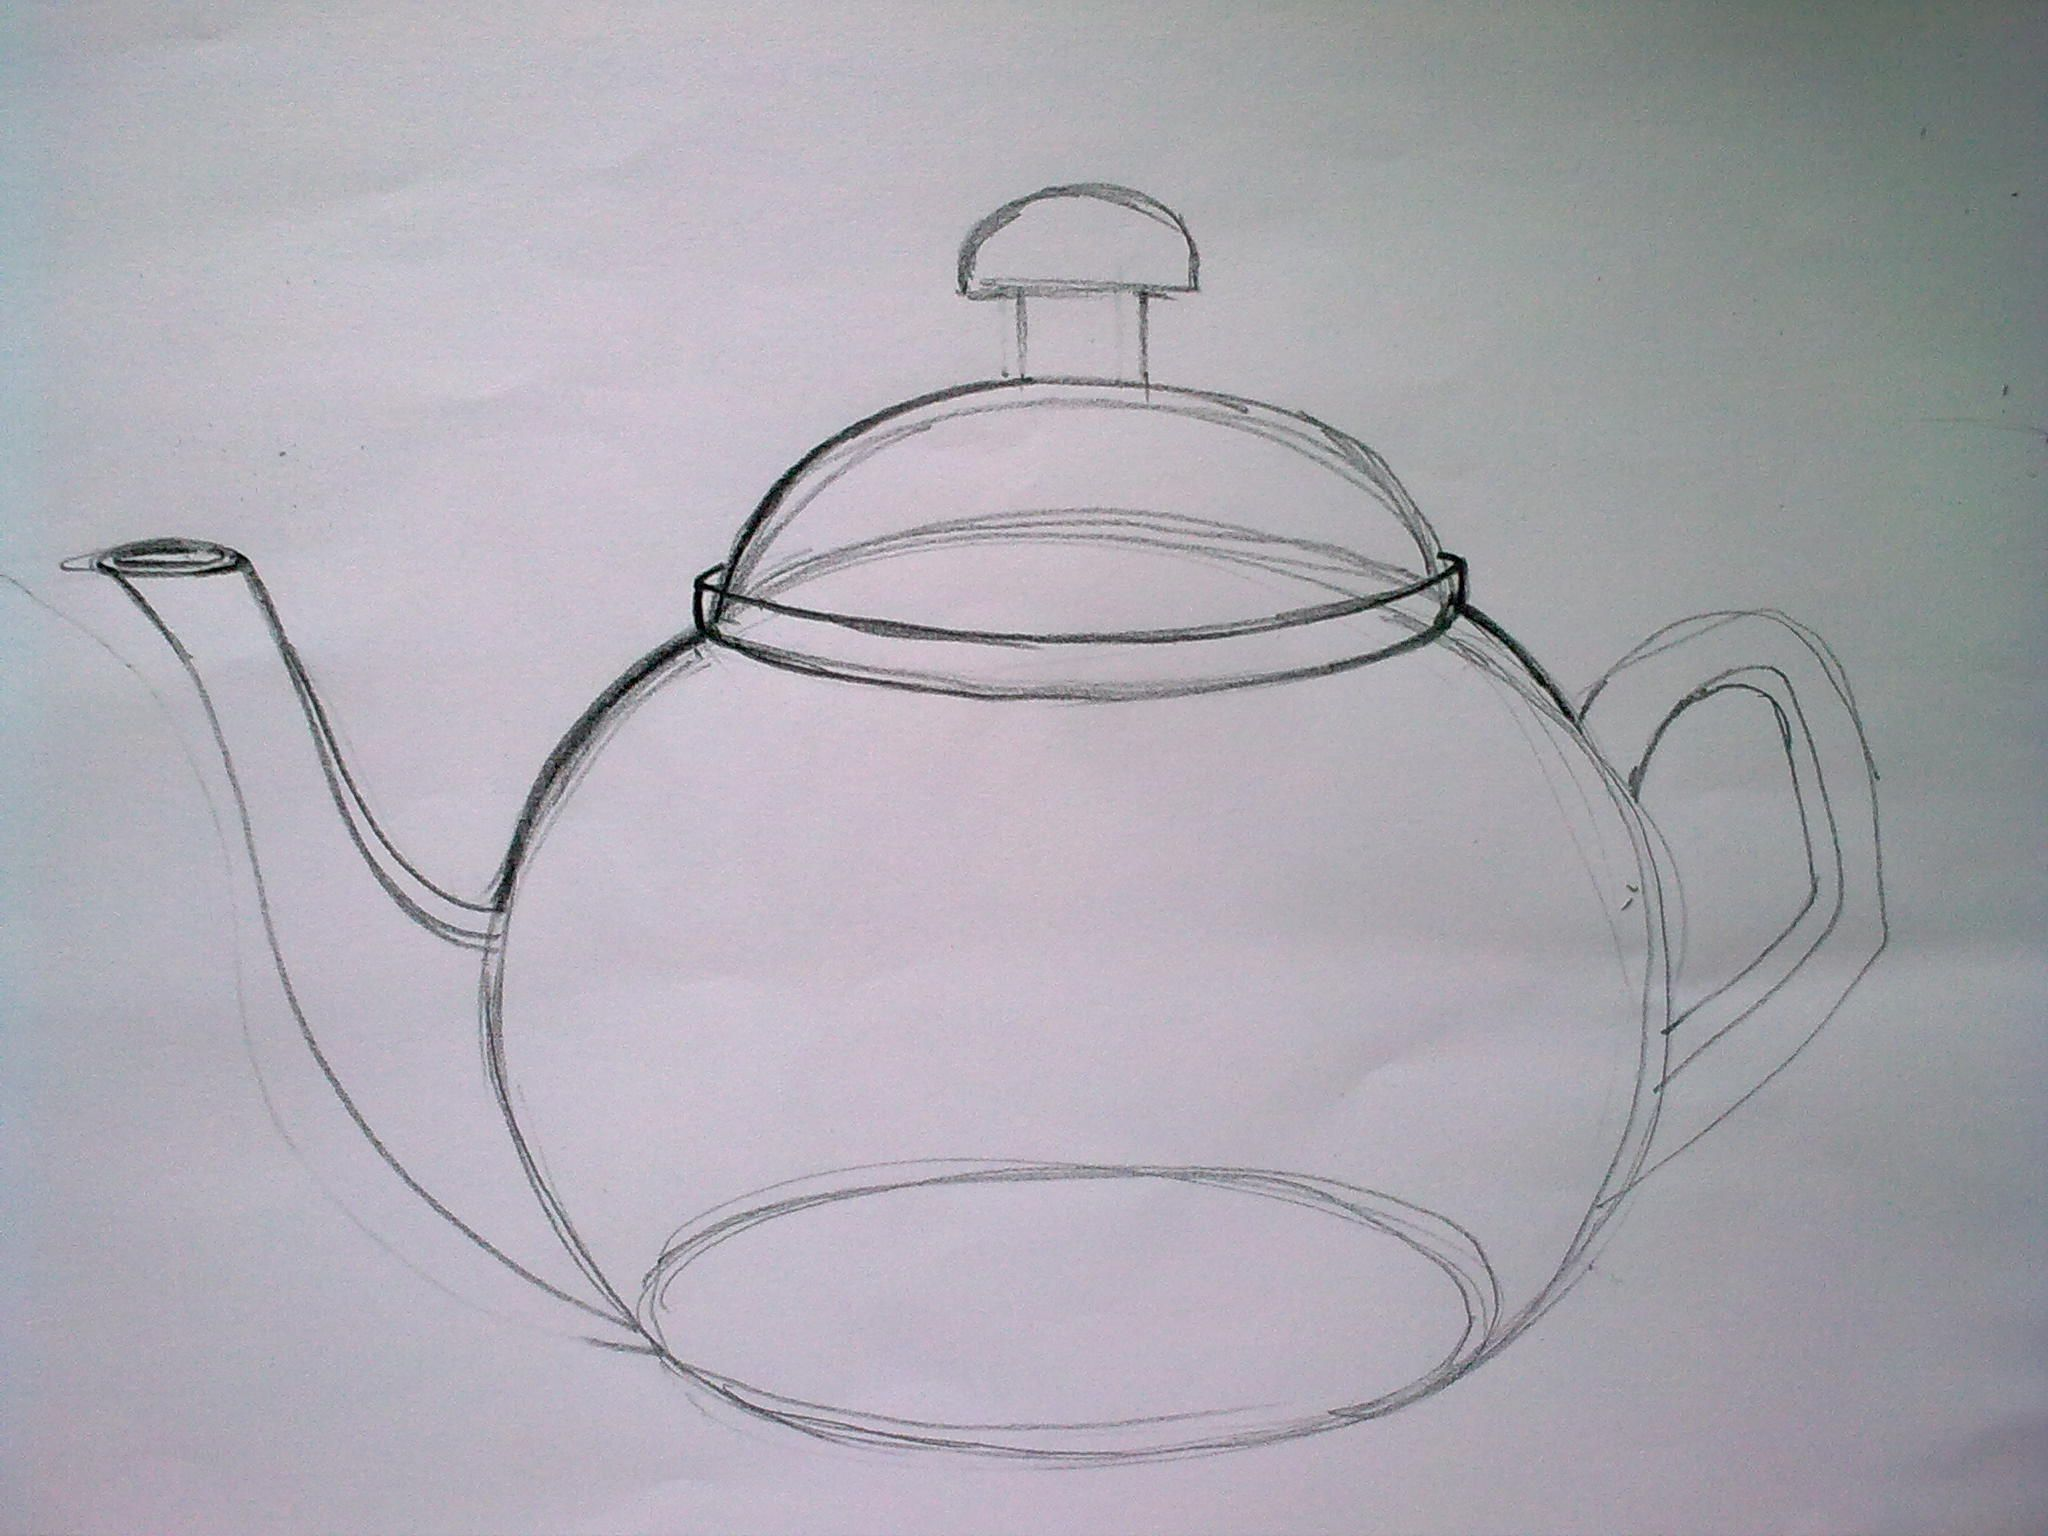 Details on how to draw a teapot